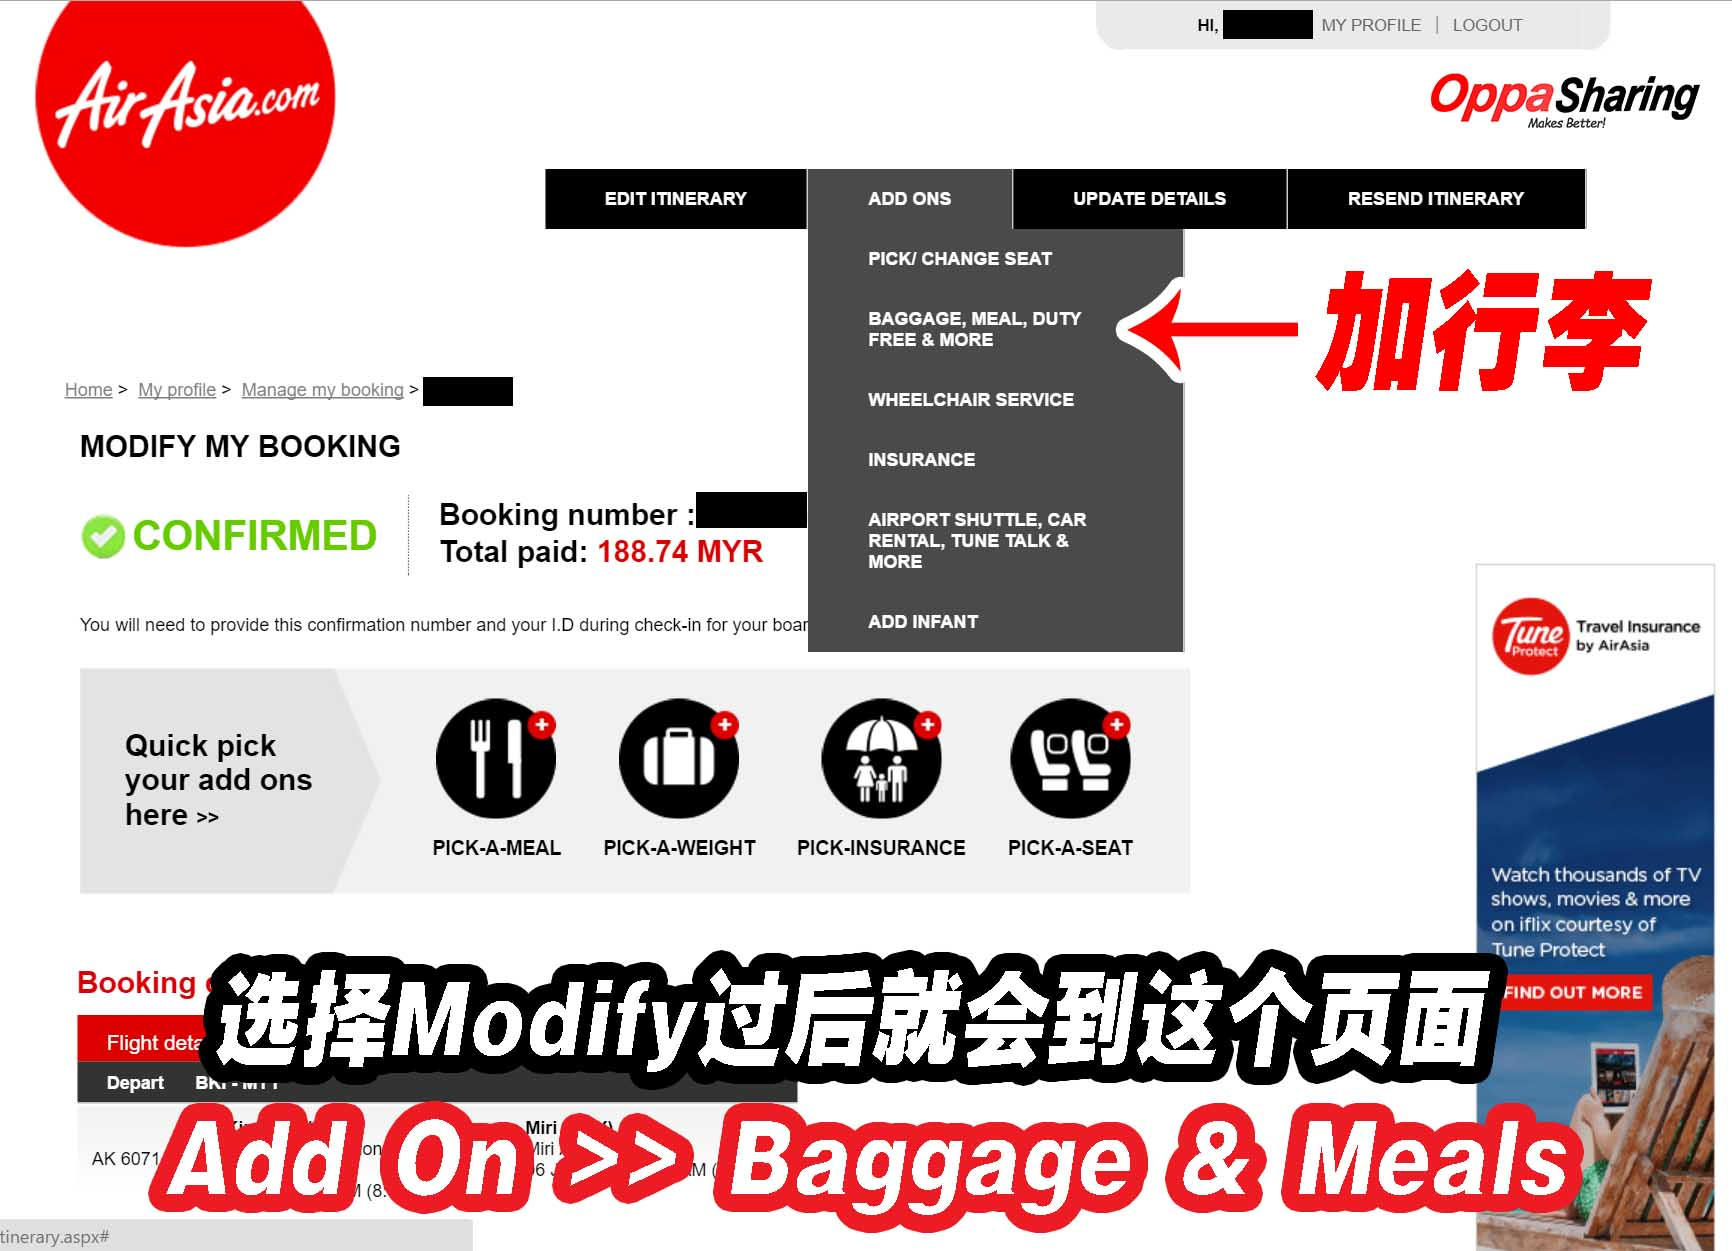 baggage and meals